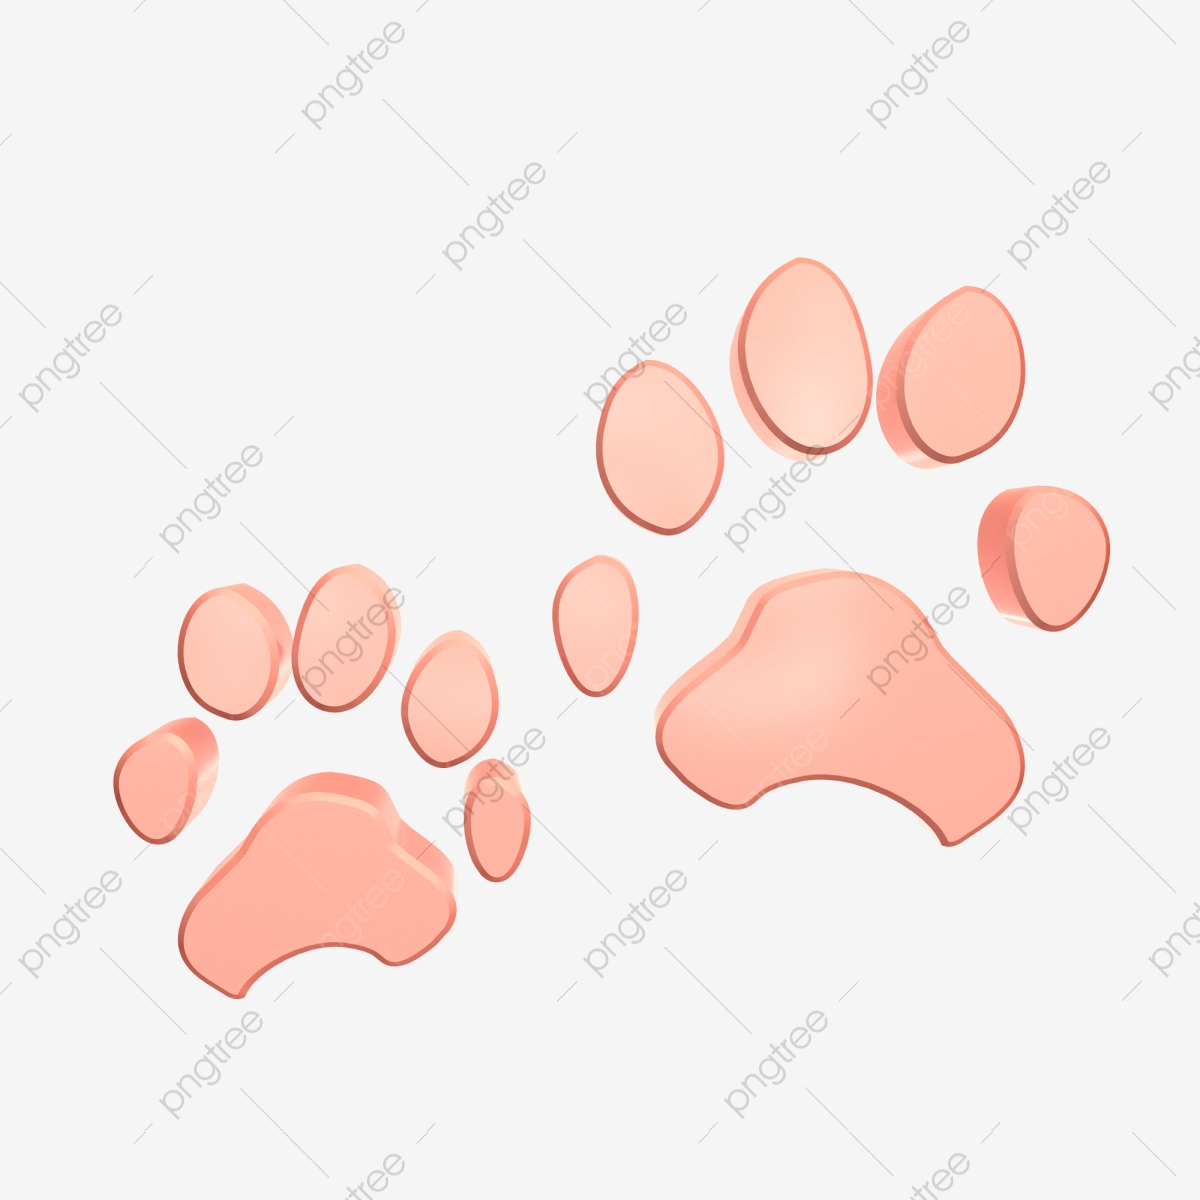 Solid Solid Color Footprint C4d Decoration C4d Stereo Pair Of Big Feet Footprints Big Feet Png Transparent Clipart Image And Psd File For Free Download